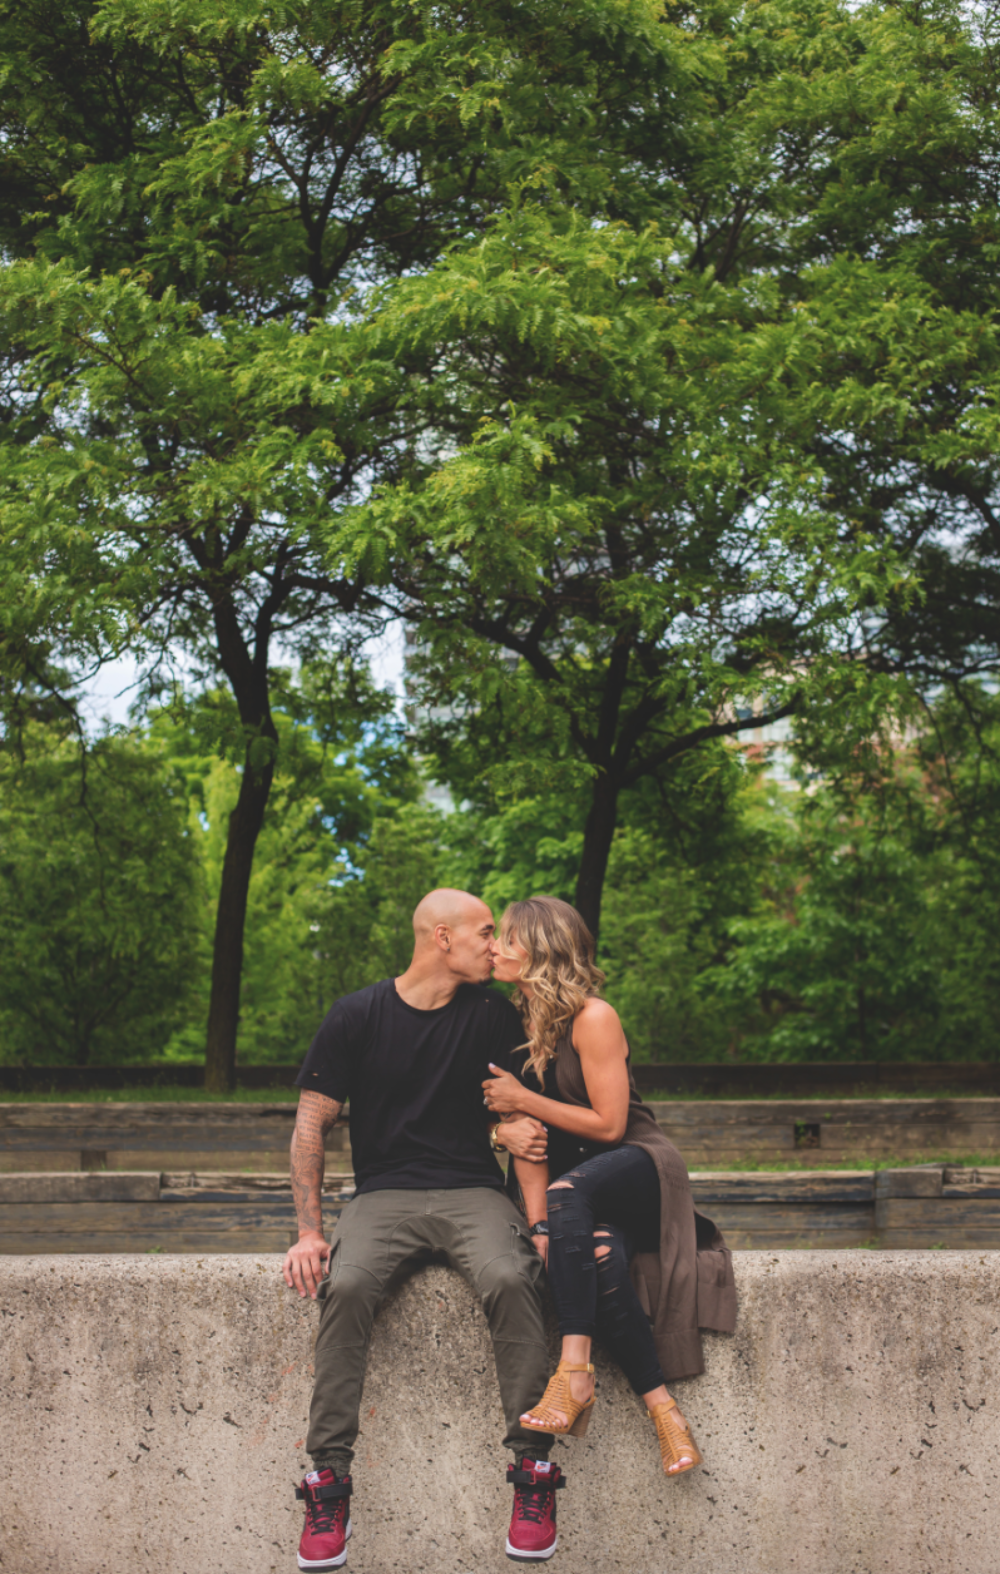 Engagement-Photos-Toronto-Downtown-Waterfront-Photographer-Wedding-Hamilton-GTA-Niagara-Oakville-Modern-Moments-by-Lauren-Engaged-Photography-Photo-Image-5.png